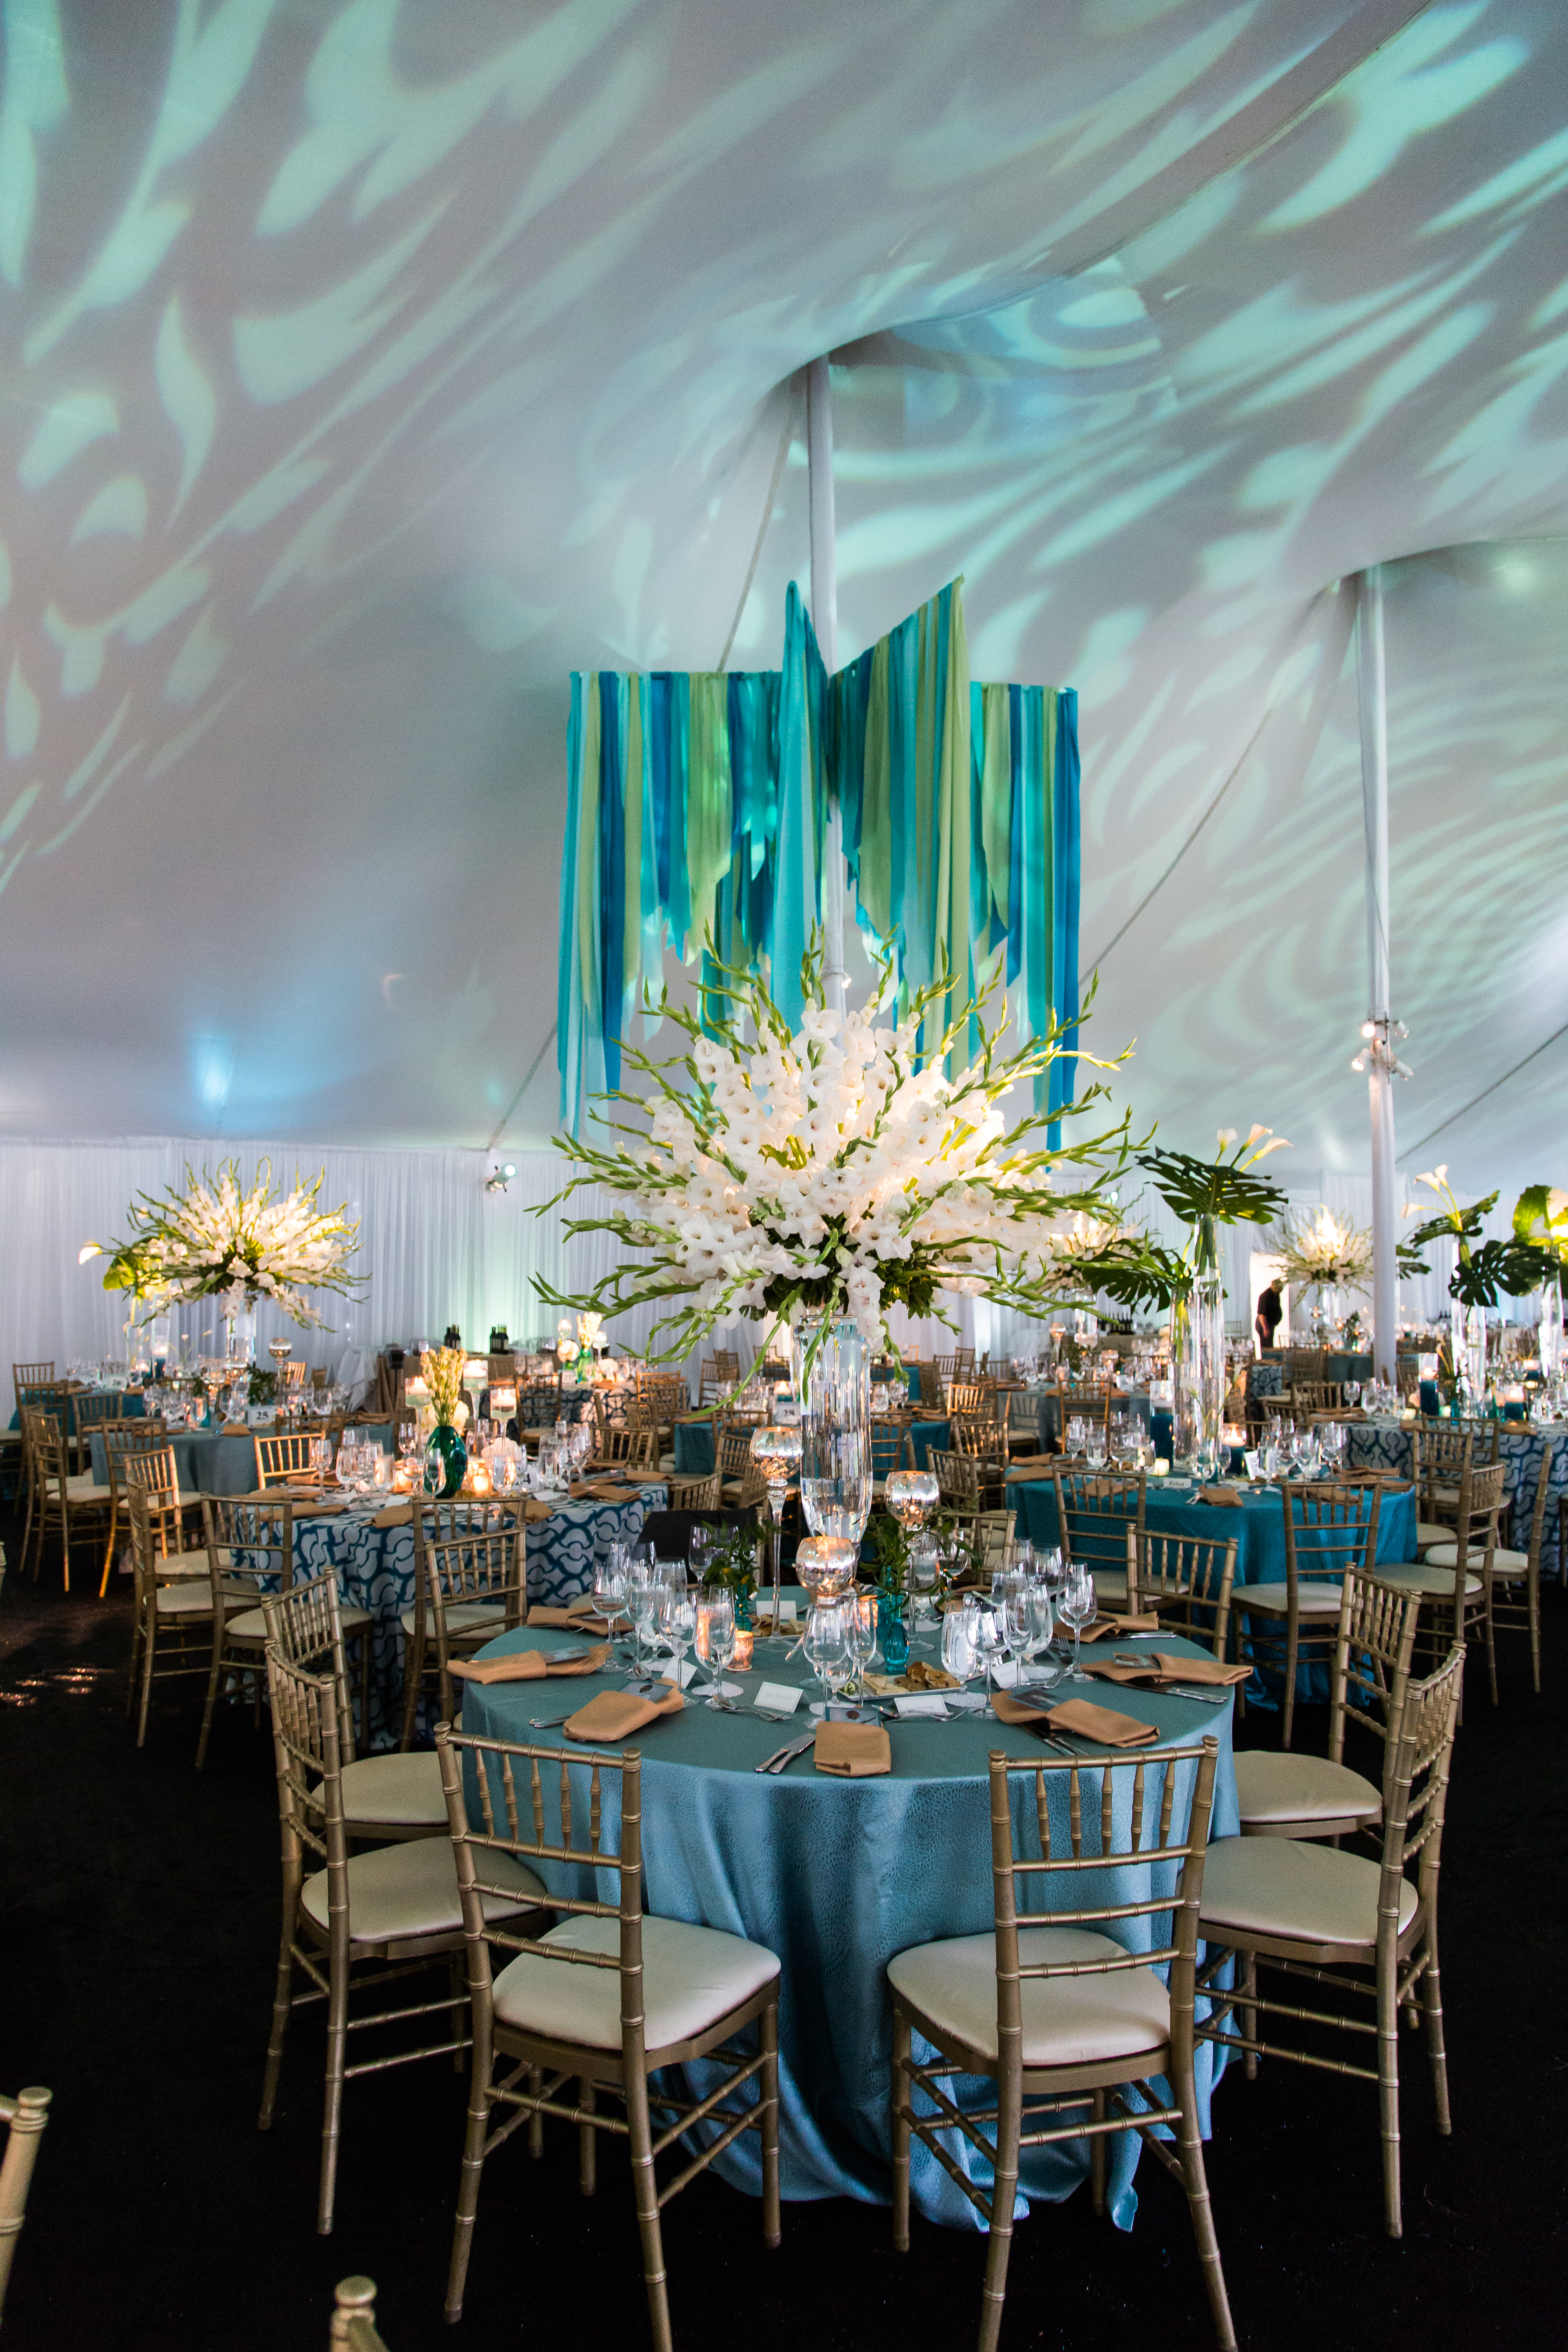 Posted by Event Creative - A Design/Decor/Floral professional